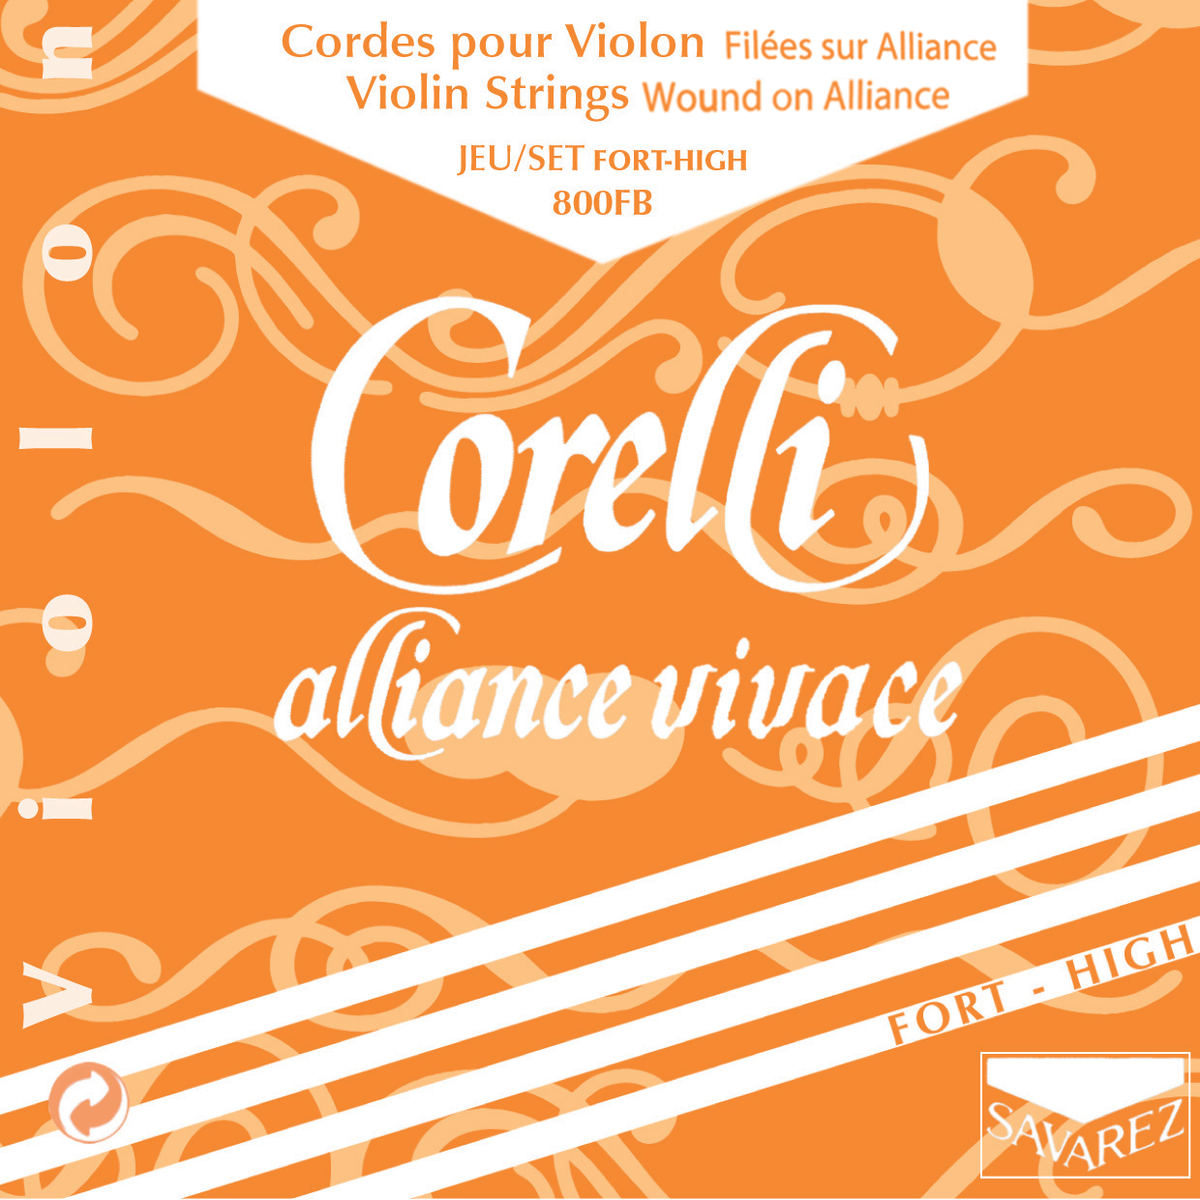 Savarez Corelli Alliance vivace - FORT HIGH,  sada strun pro housle